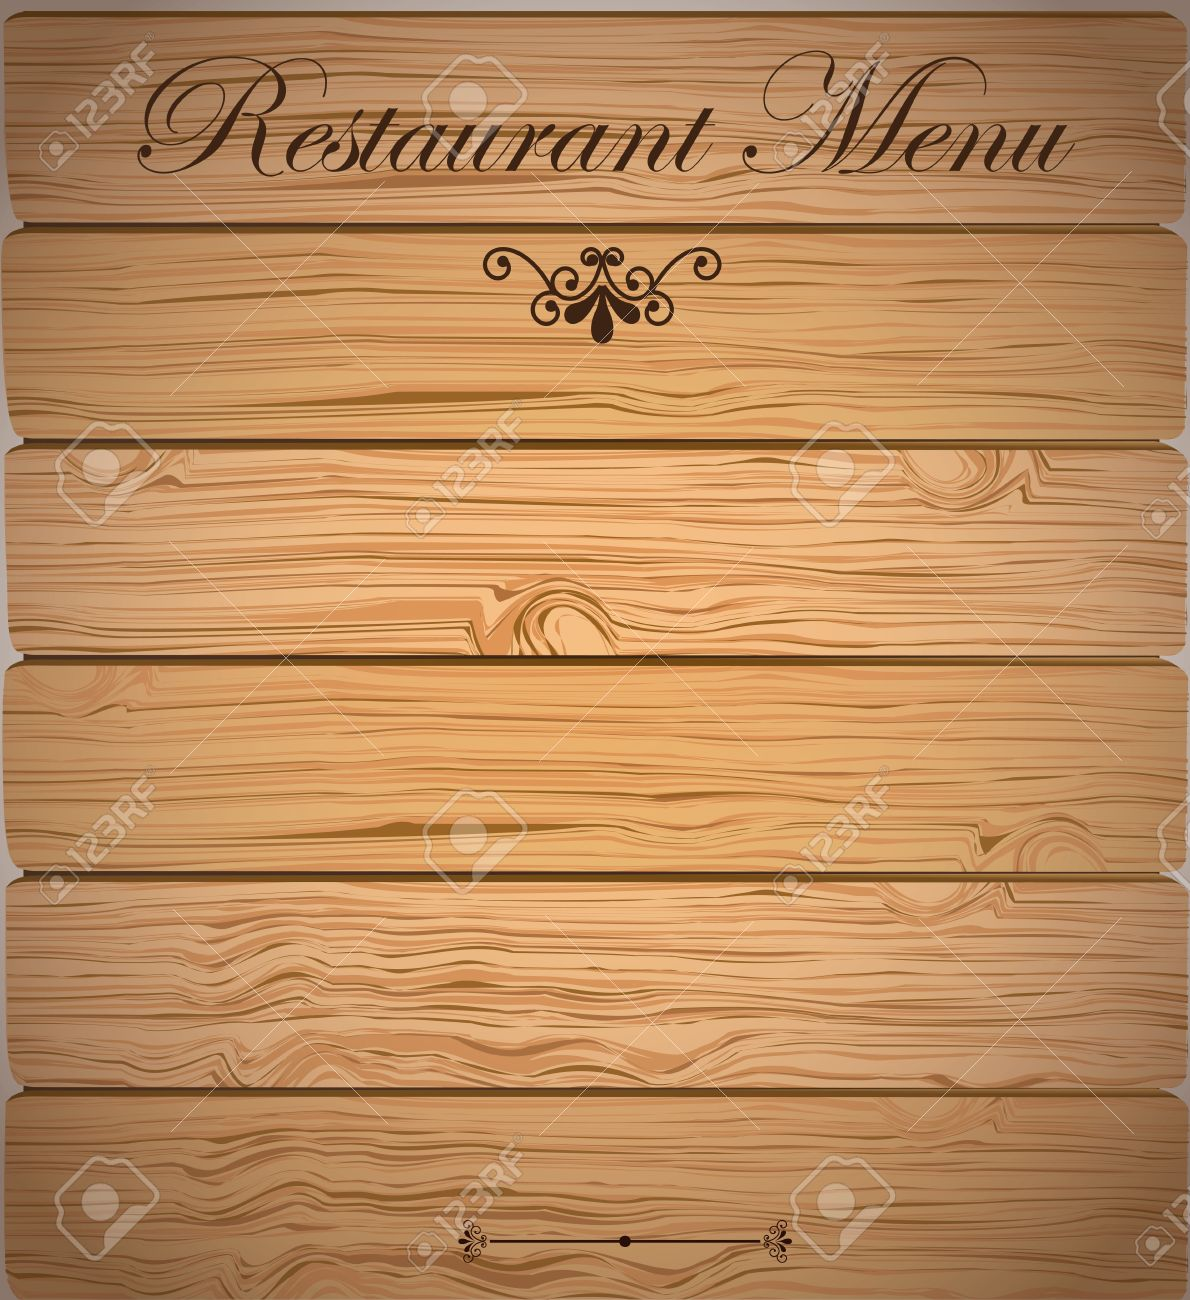 restaurant menu over wooden background vector illustration royalty